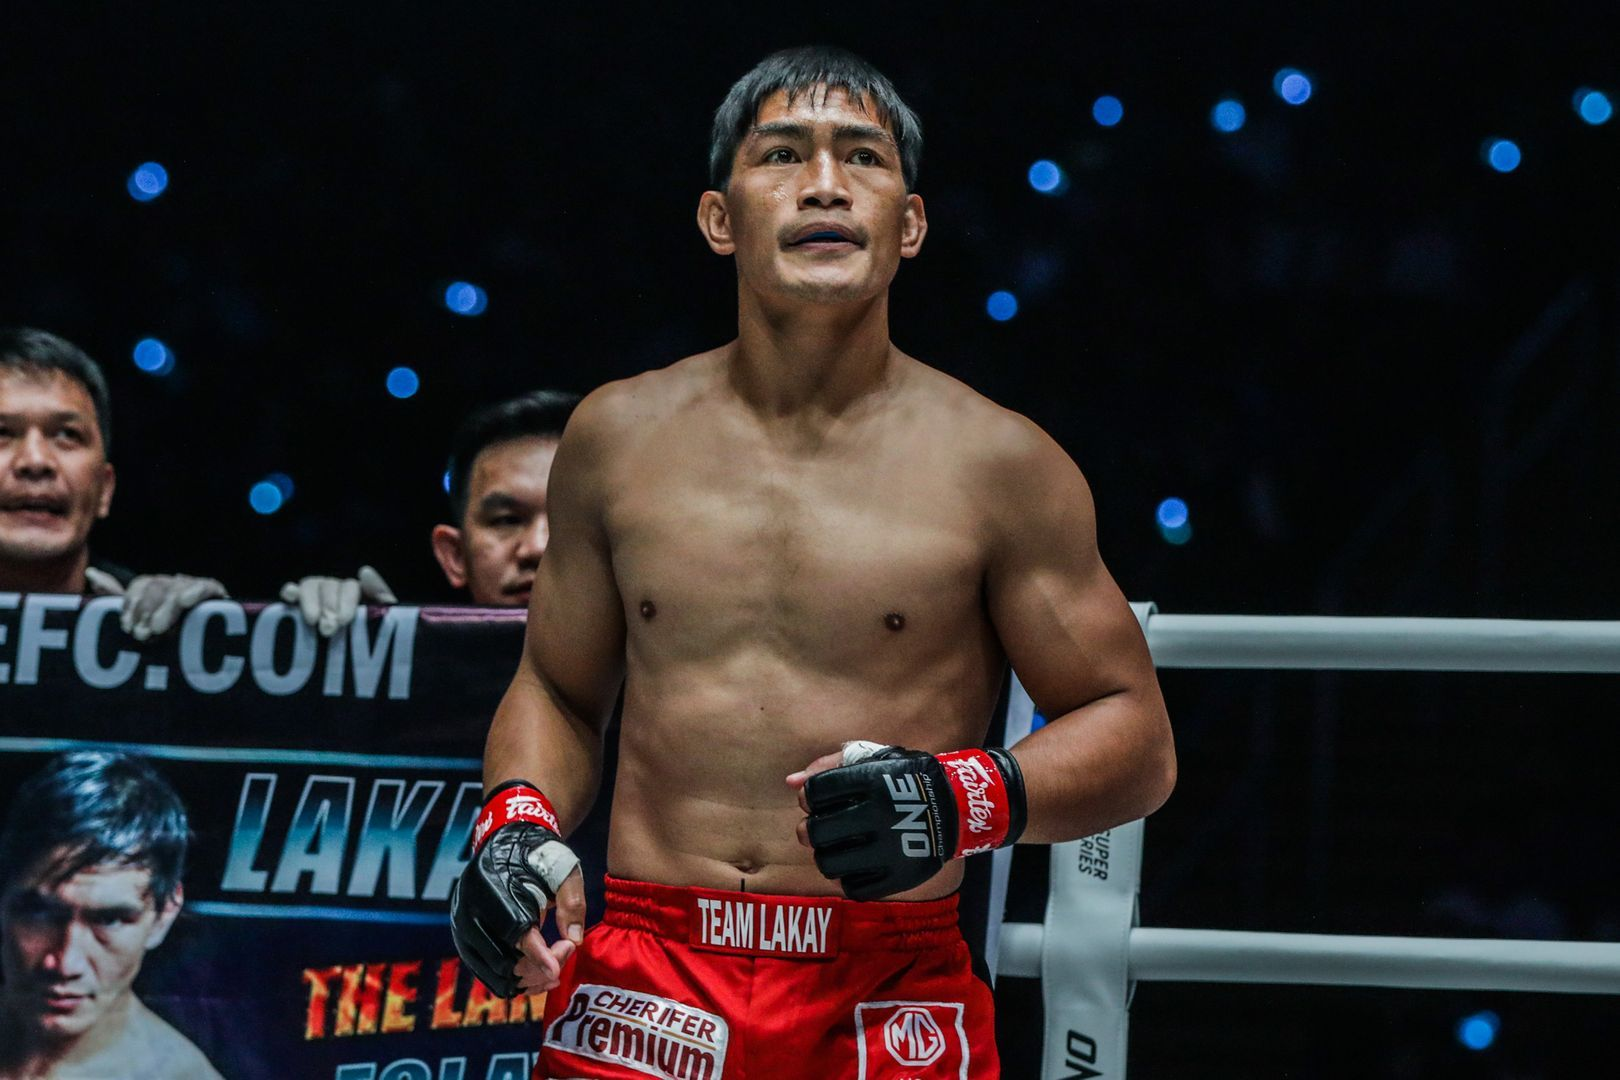 Folayang Banking On His Striking In 'Unpredictable' Bout With Aoki - Folayang